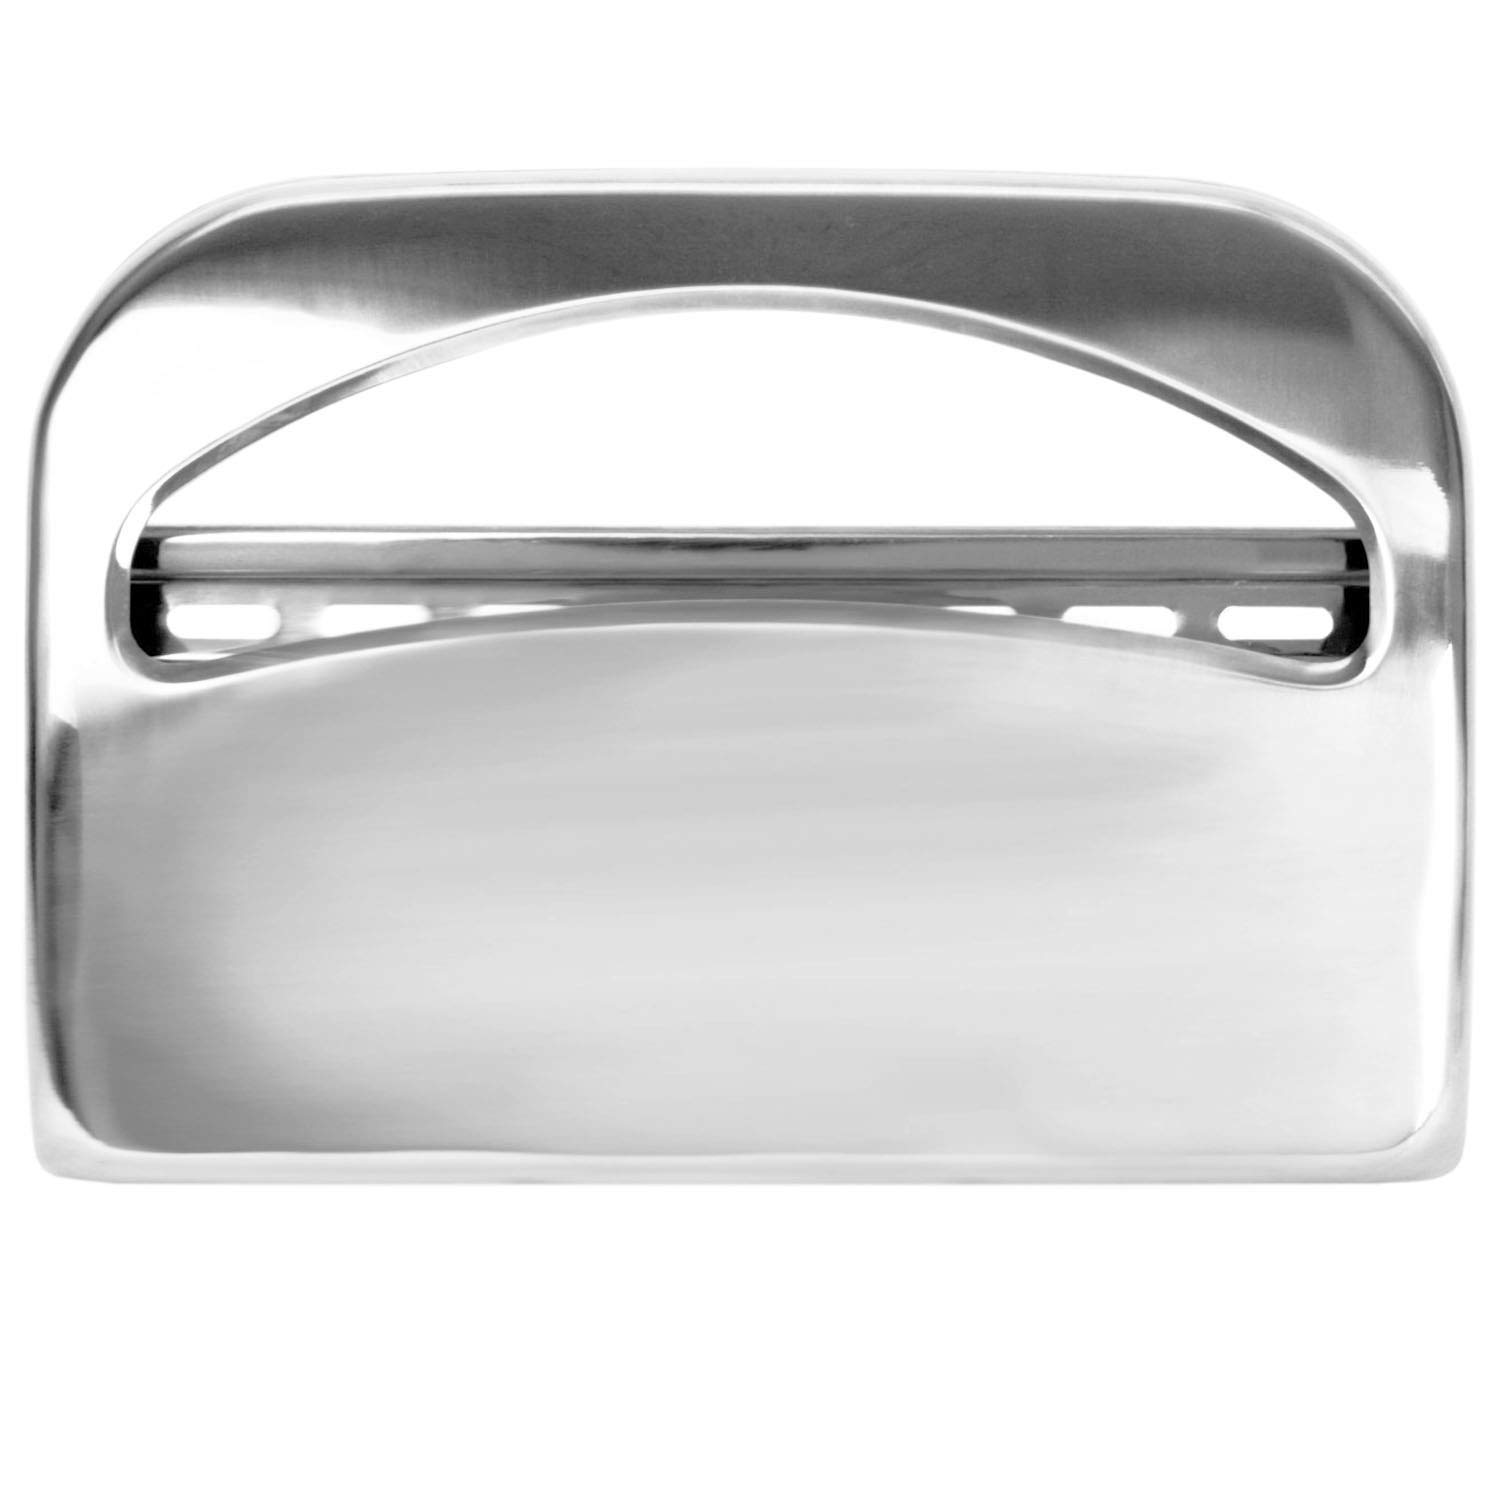 Tiger Chef Silver Toilet Seat Cover Dispenser with 1000 Free Toilet Seat Covers - Starter Pack (Chrome)